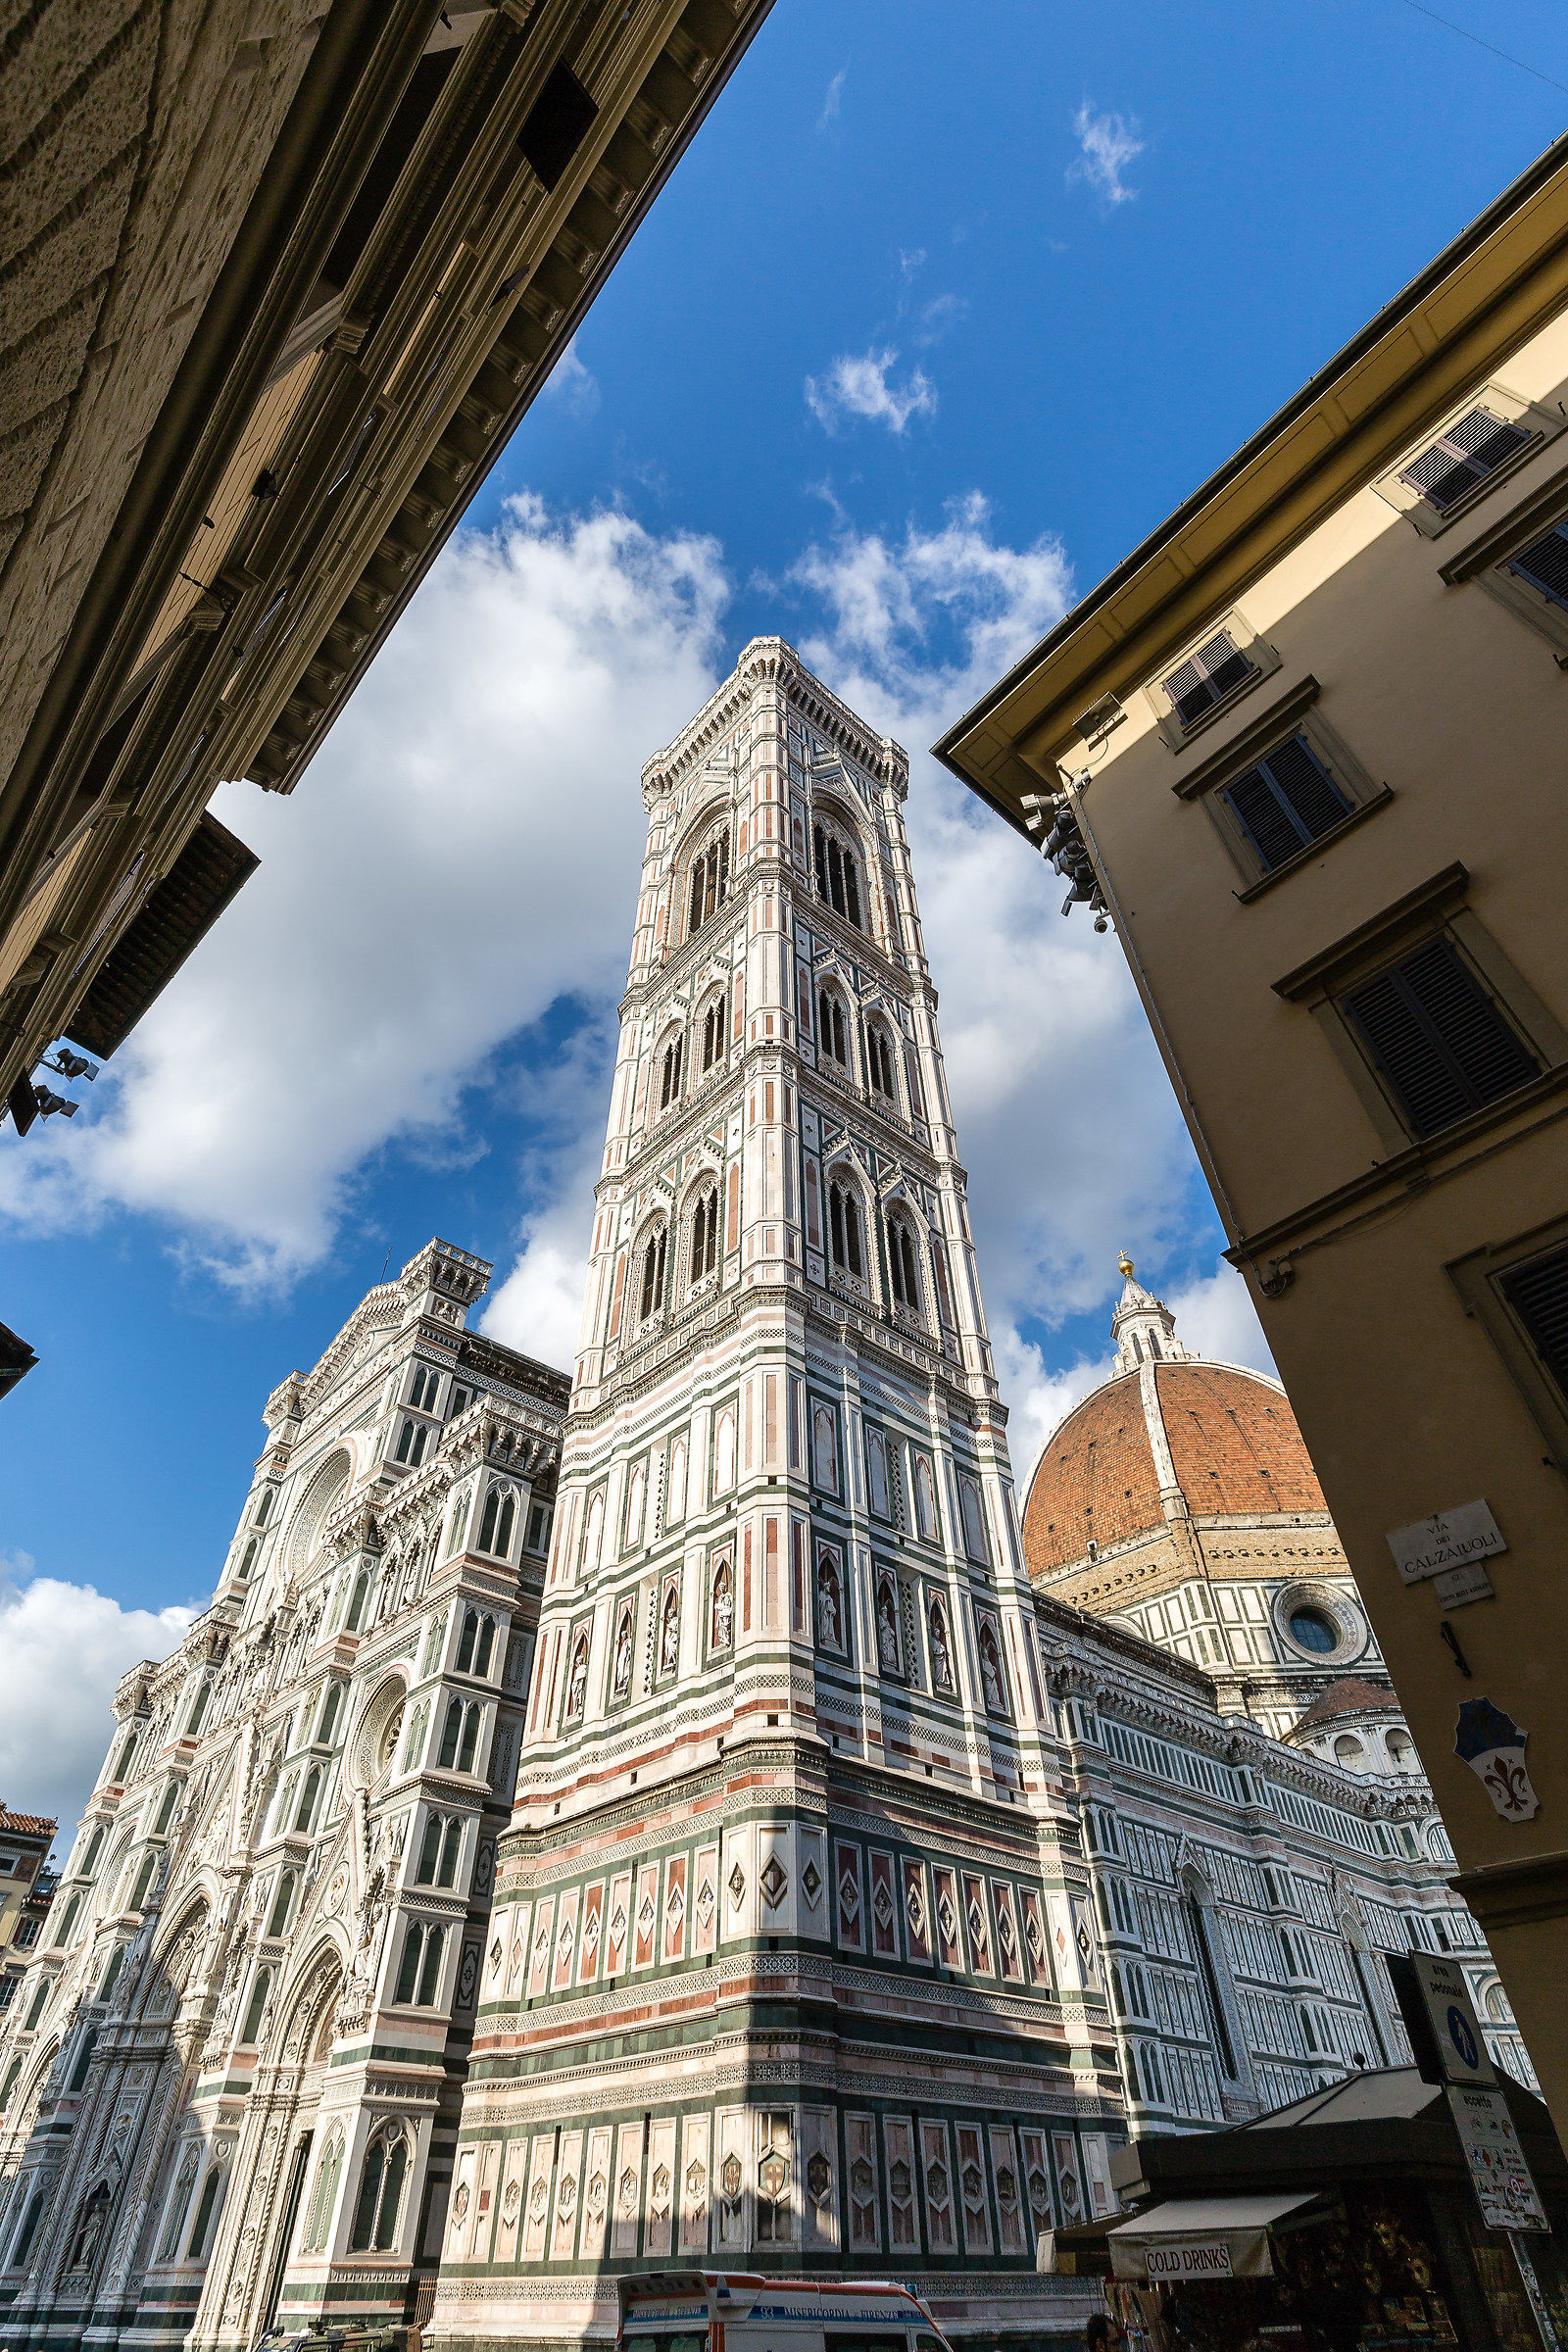 Florence and its cathedral...